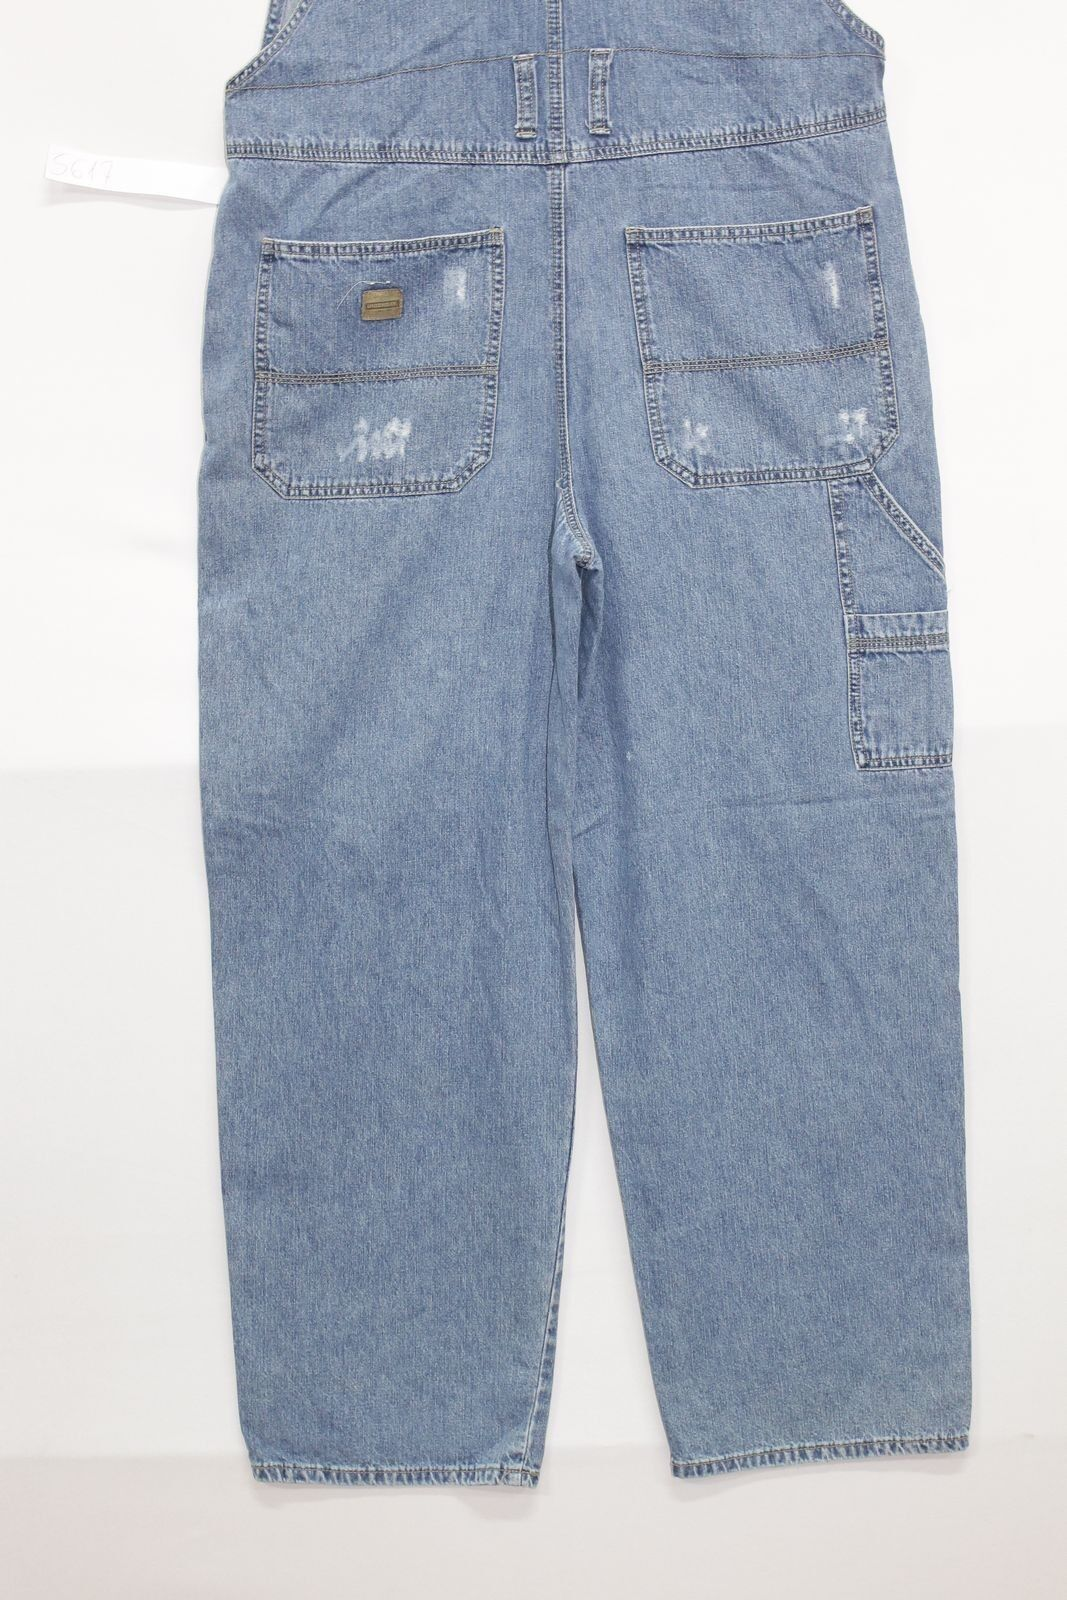 Salopette UNION BAY S617 Code S617 BAY taille M Jeans d'occassion vintage Custom 872d5b